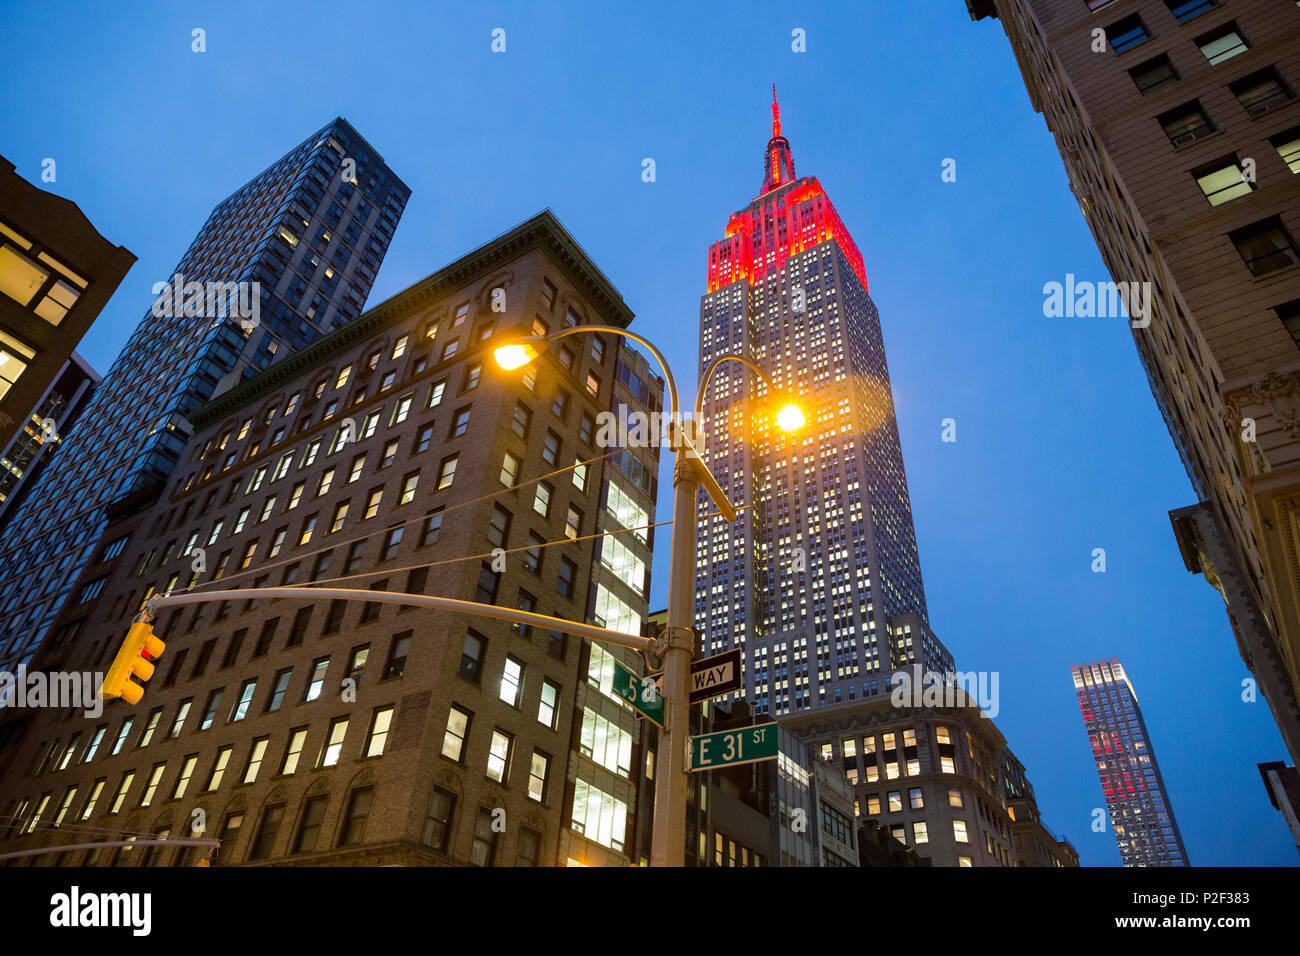 5th Avenue, 5, E 31 Street, corner, Empire State Building, twilight, traffic light, midtown, Manhattan, New York City, USA, Amer - Stock Image